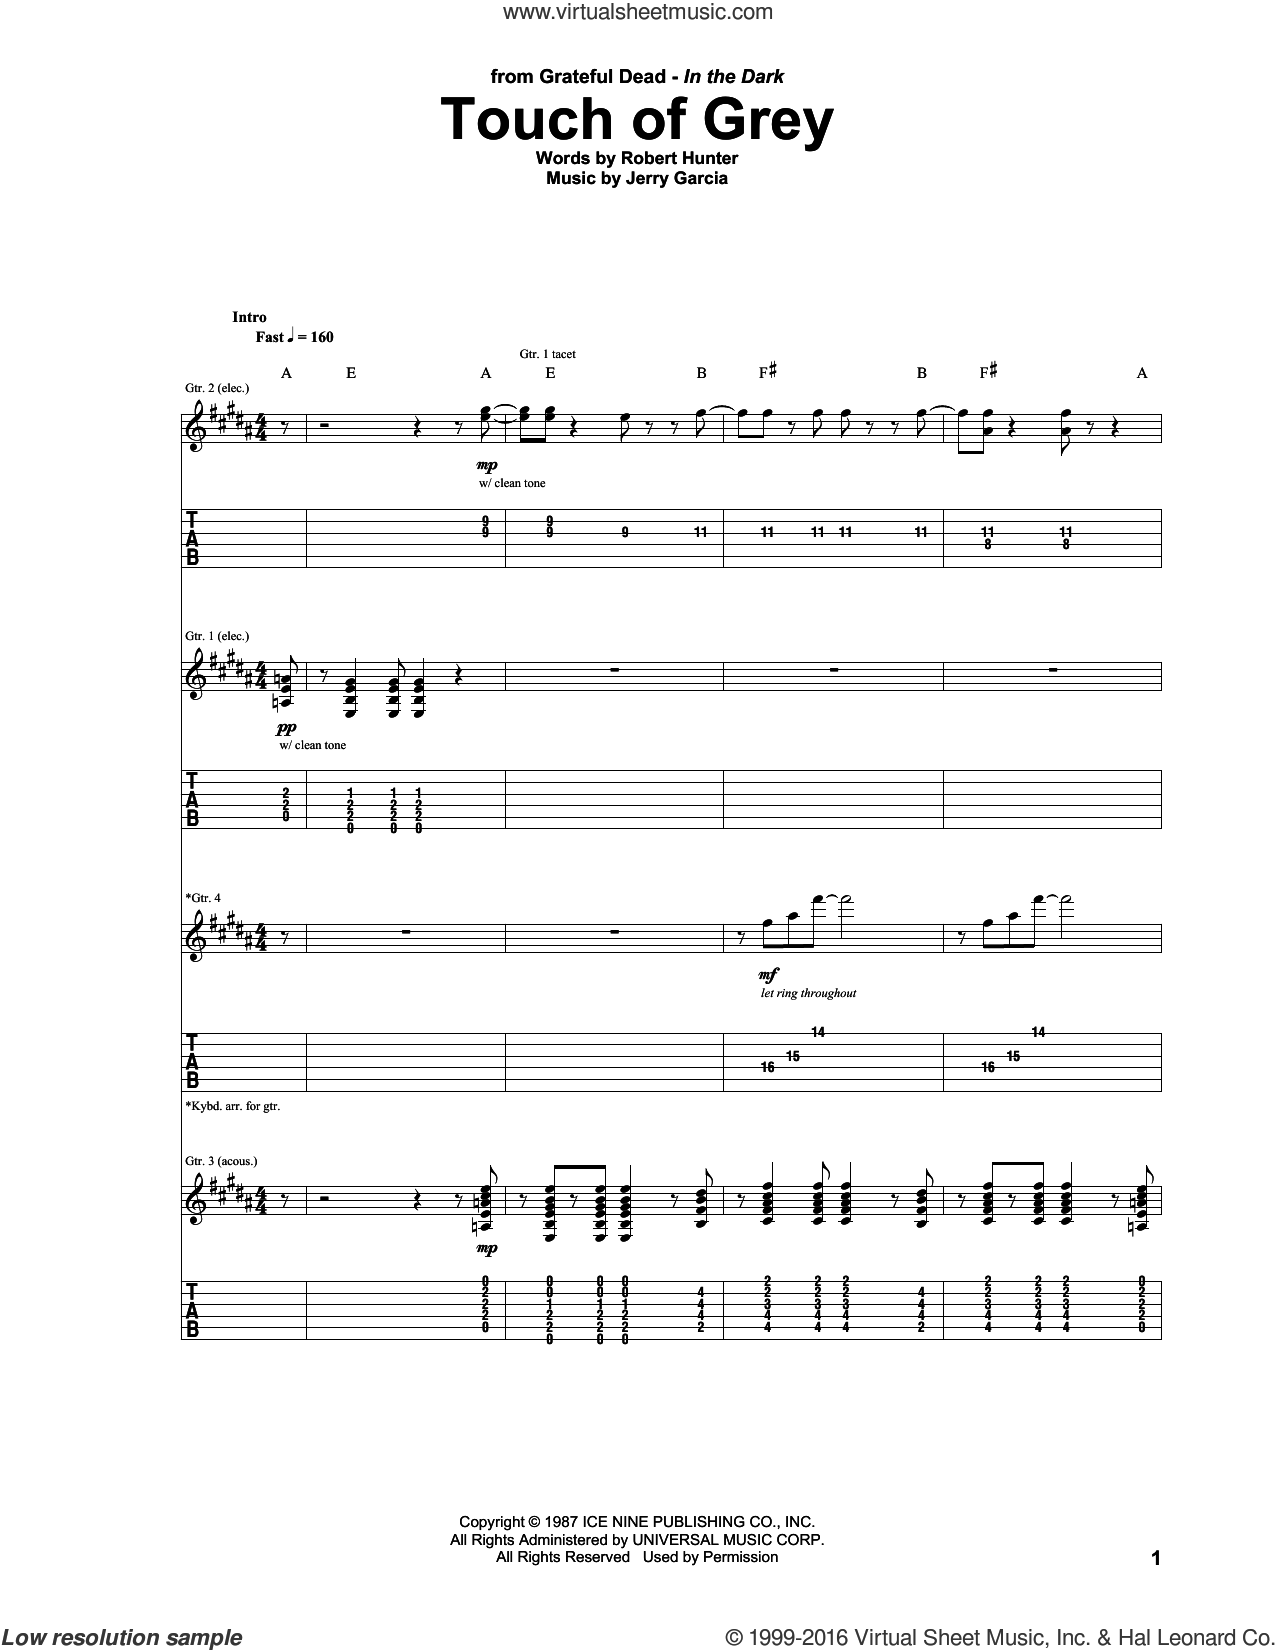 Touch Of Grey sheet music for guitar (tablature) by Grateful Dead, Jerry Garcia and Robert Hunter, intermediate skill level